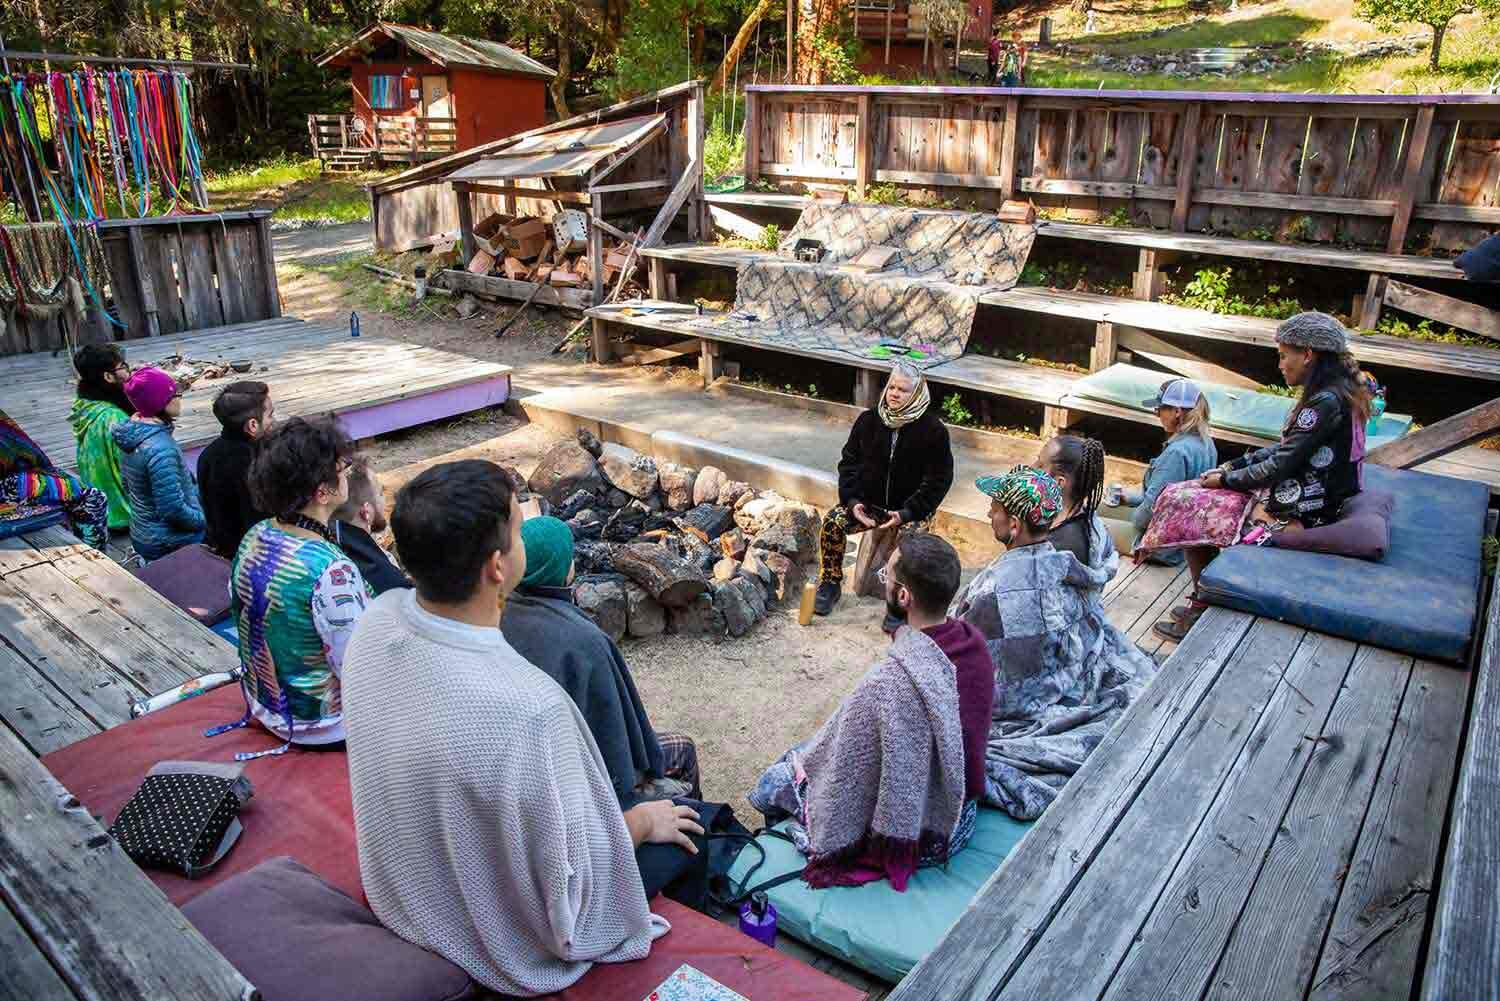 Alchemy of Desire Workshop, Into the Woods retreat 2019 at Groundswell CA | photo Devlin Shand